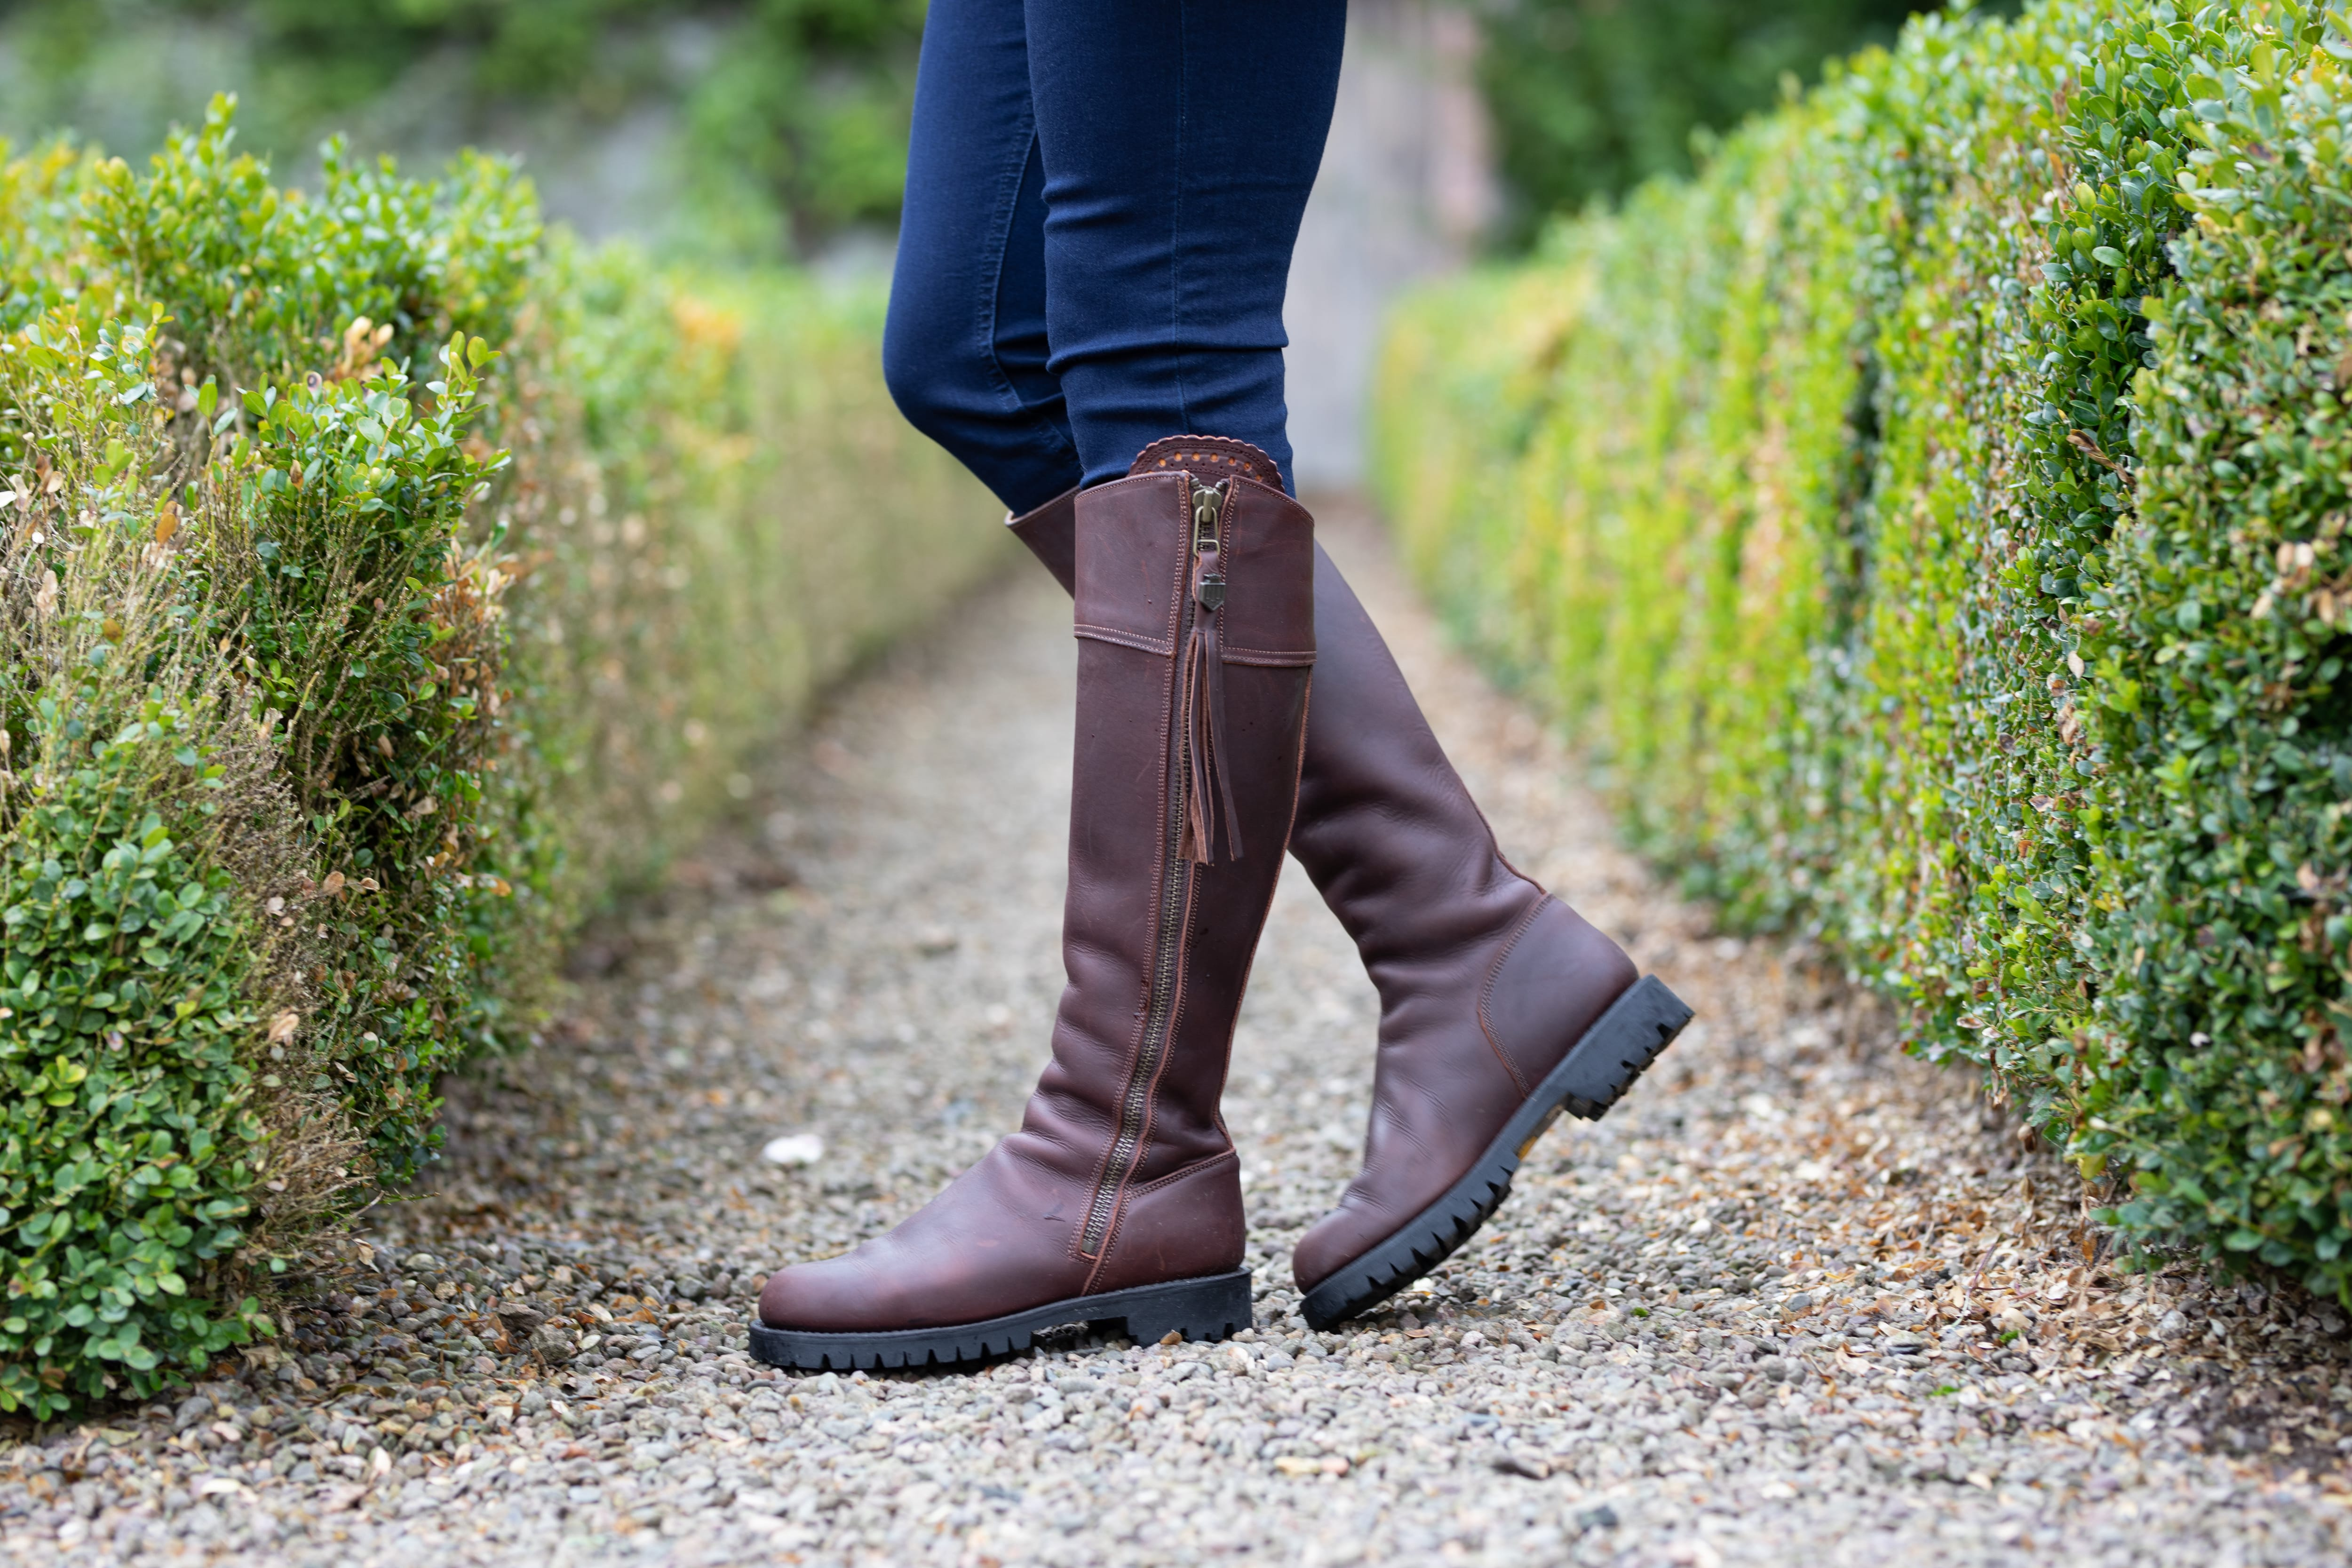 Caring For Your Fairfax \u0026 Favor Boots